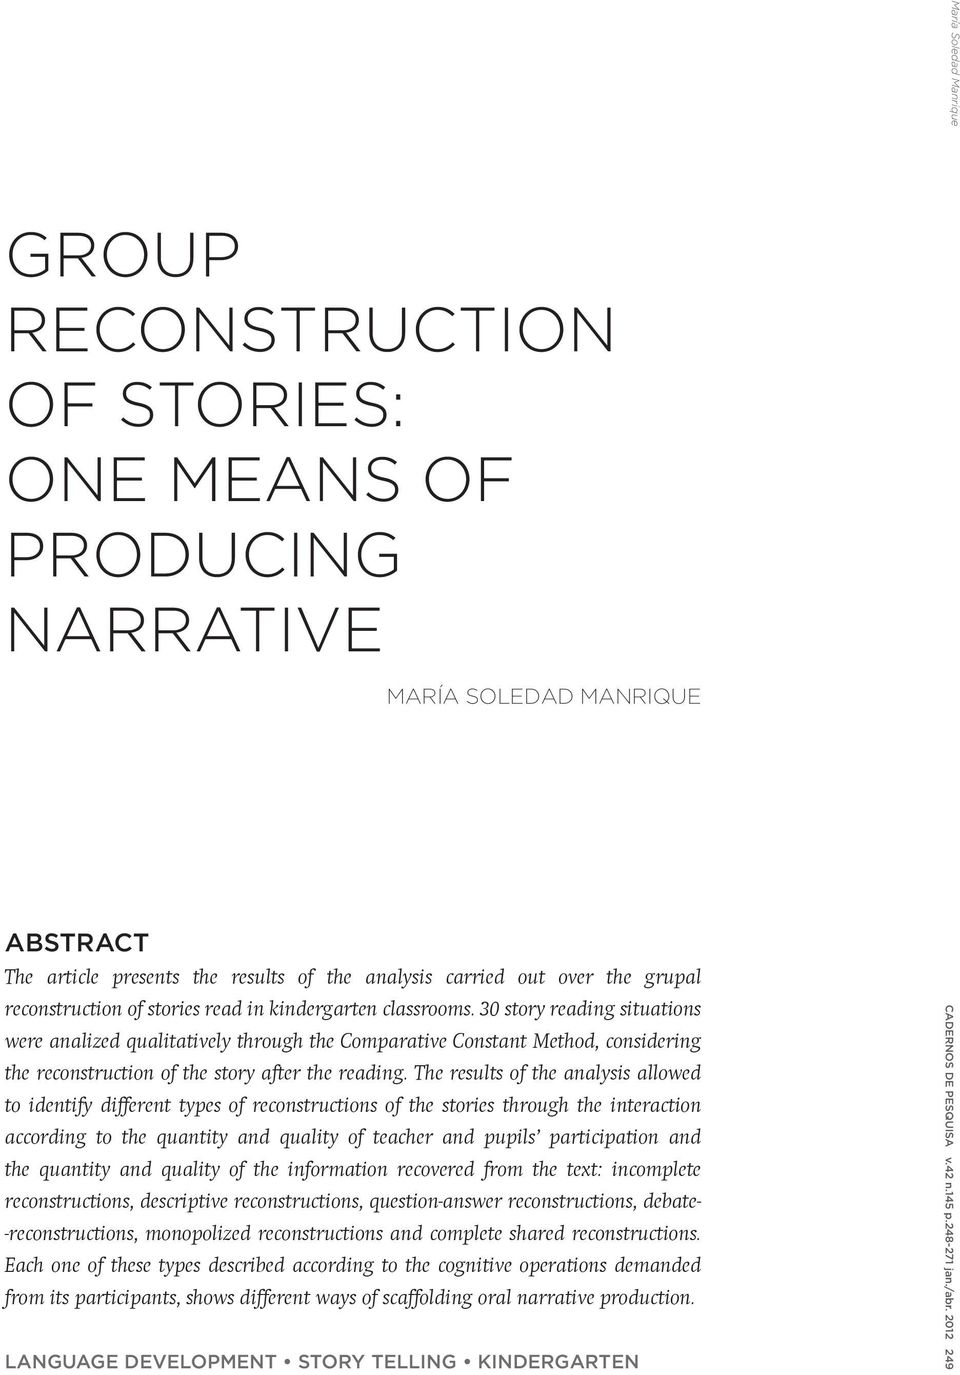 30 story reading situations were analized qualitatively through the Comparative Constant Method, considering the reconstruction of the story after the reading.